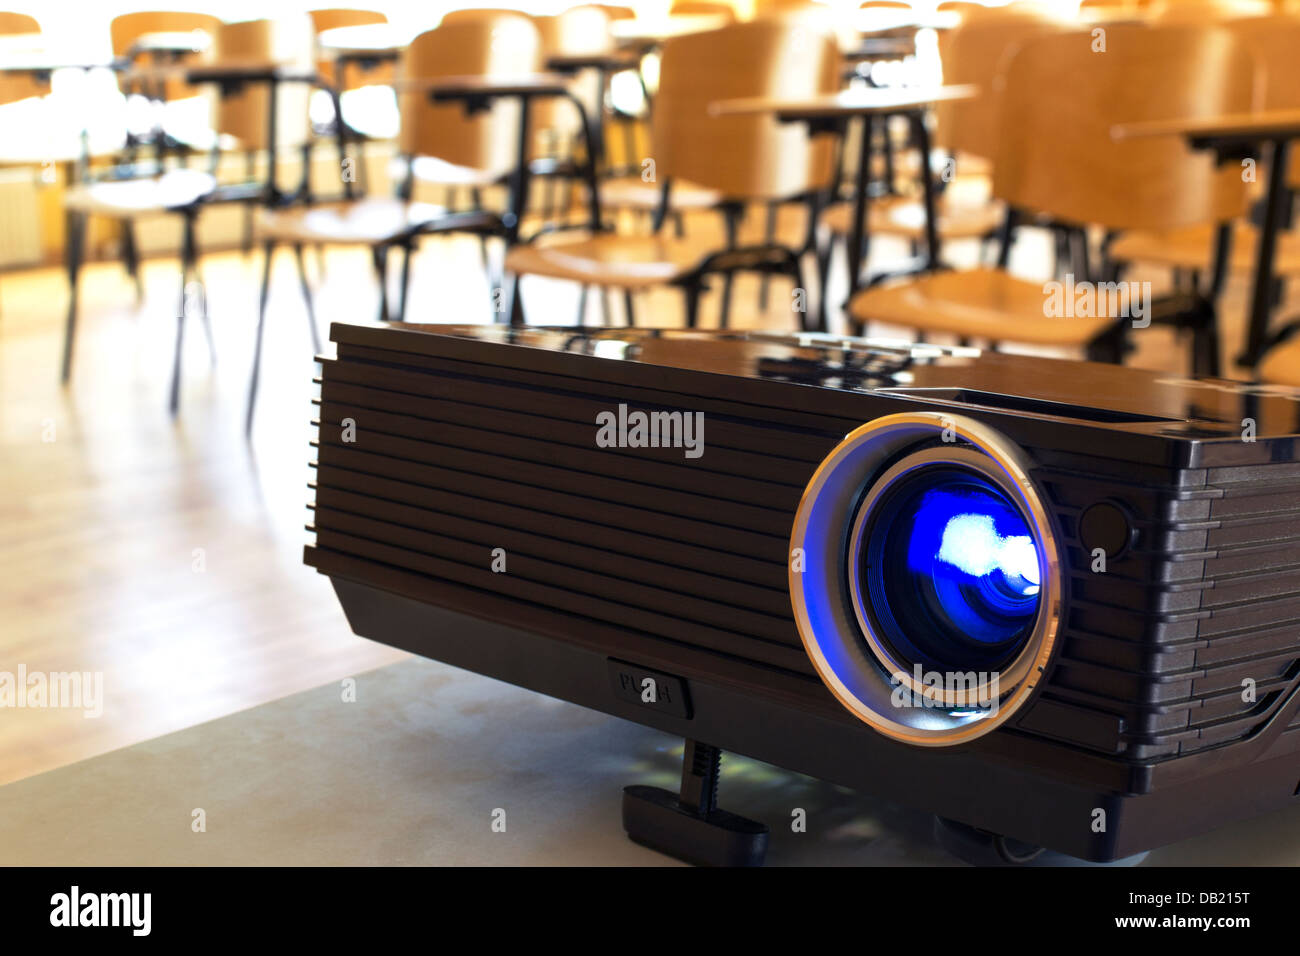 Turned on digital projector in a conference hall - Stock Image